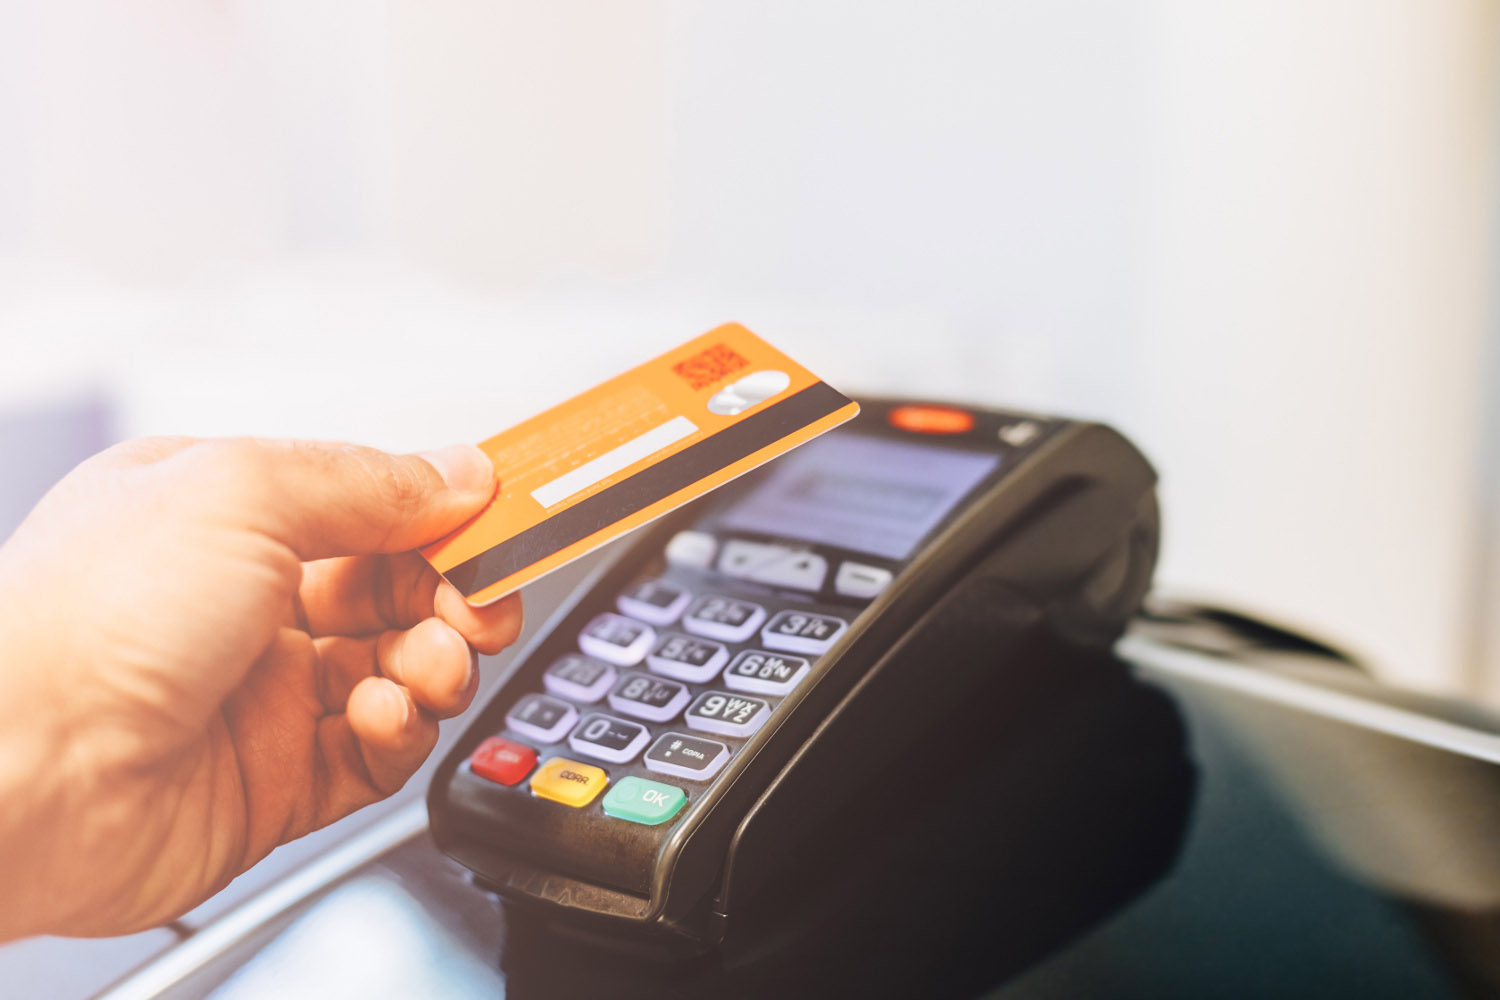 EMV Transaction Flow. Part 4: PDOL and Contactless Cards, Characteristic Features of qVSDC and qUICS